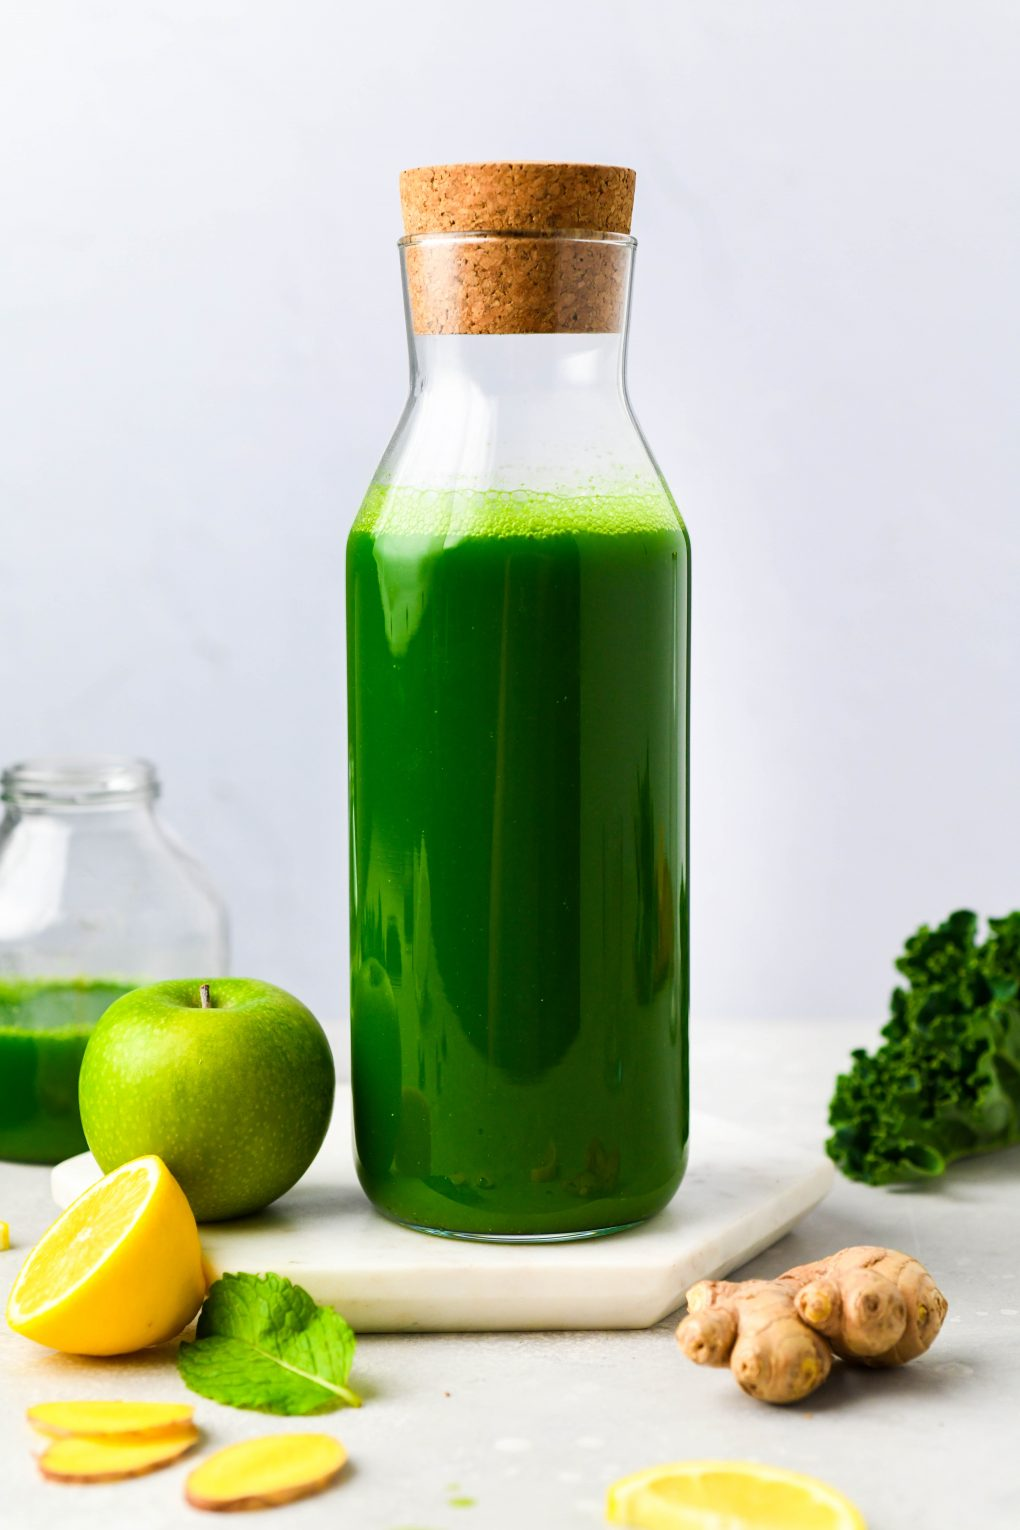 Straight on shot of a carafe filled with green juice. On a light background surrounded by a green apple, a sliced lemon, ginger, fresh mint, and a few kale leaves.